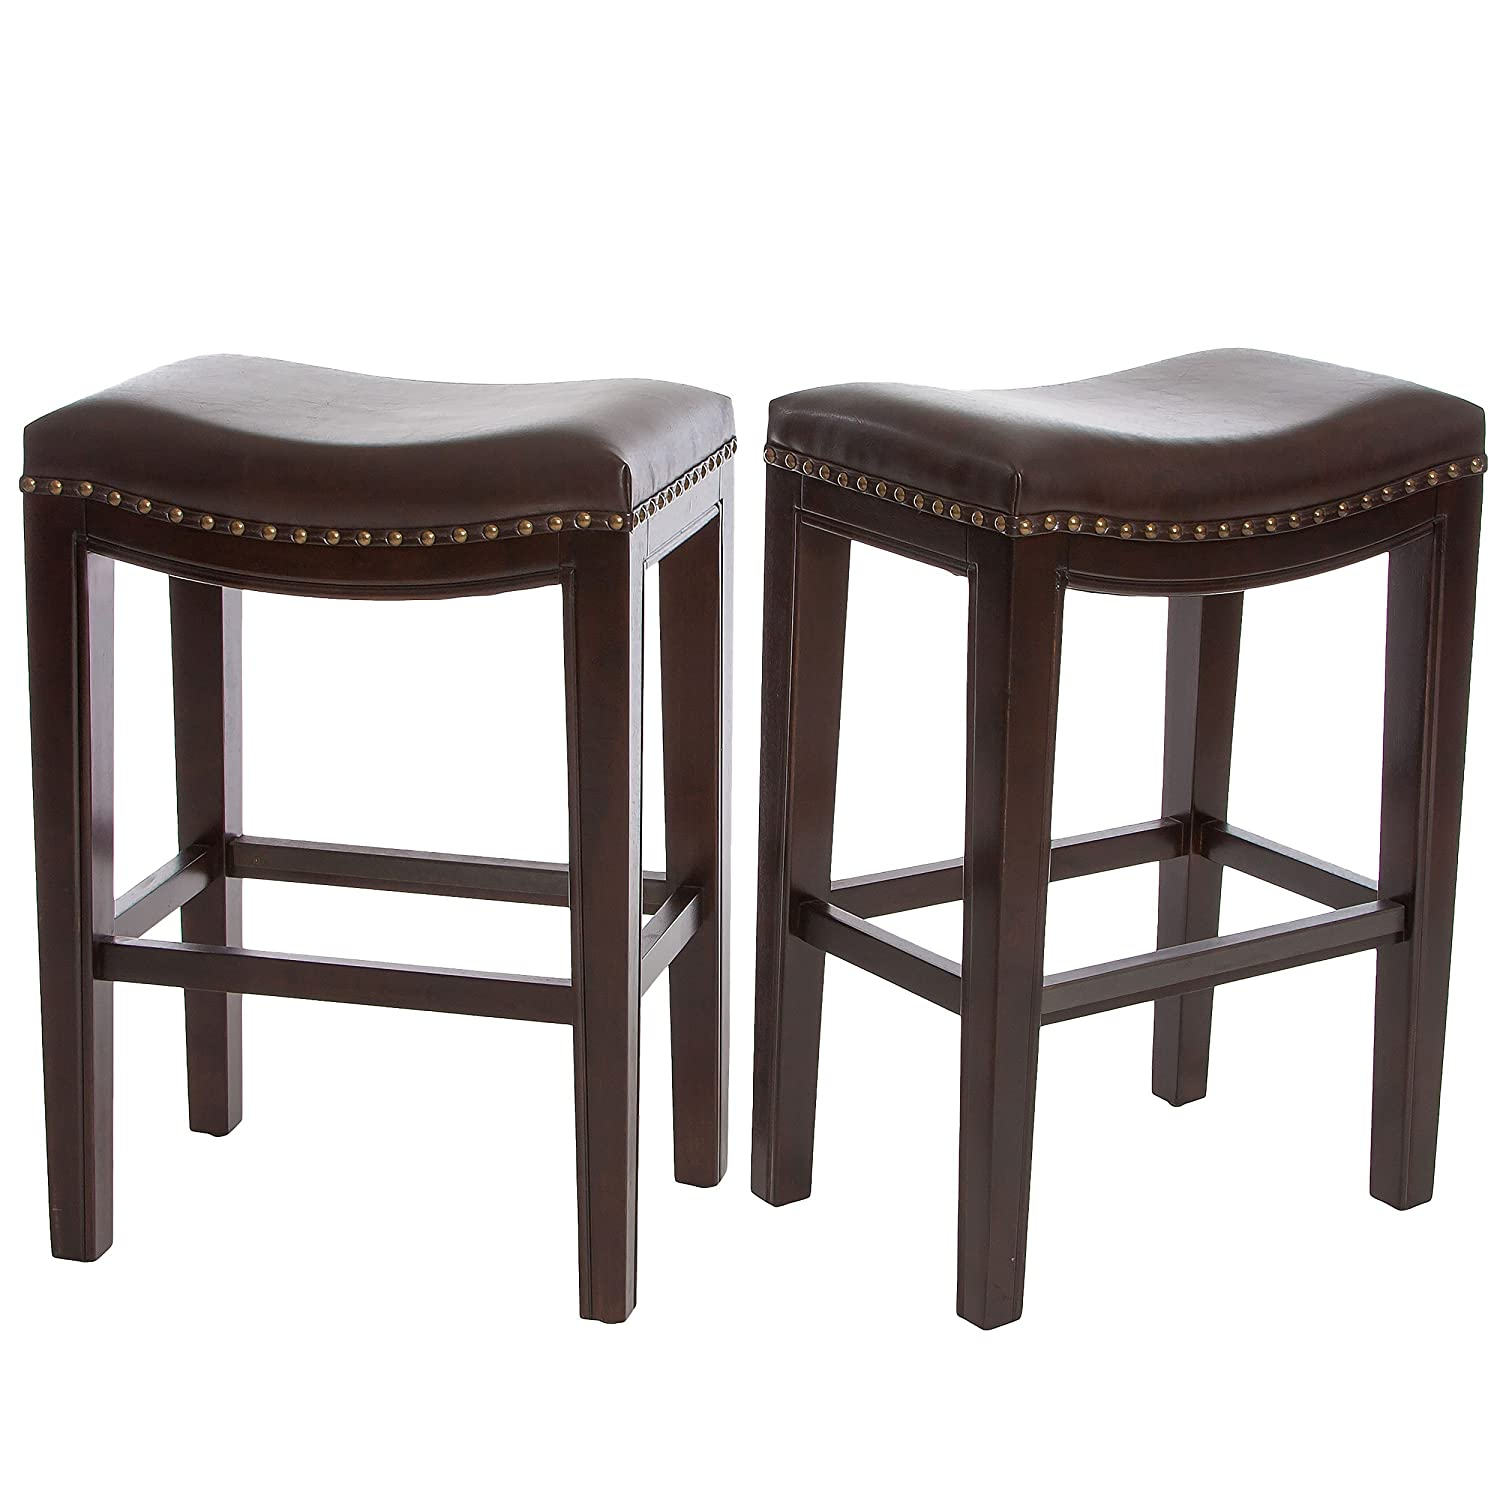 amazoncom jaeden backless brown leather counter stools (set of   - amazoncom jaeden backless brown leather counter stools (set of )kitchen  dining